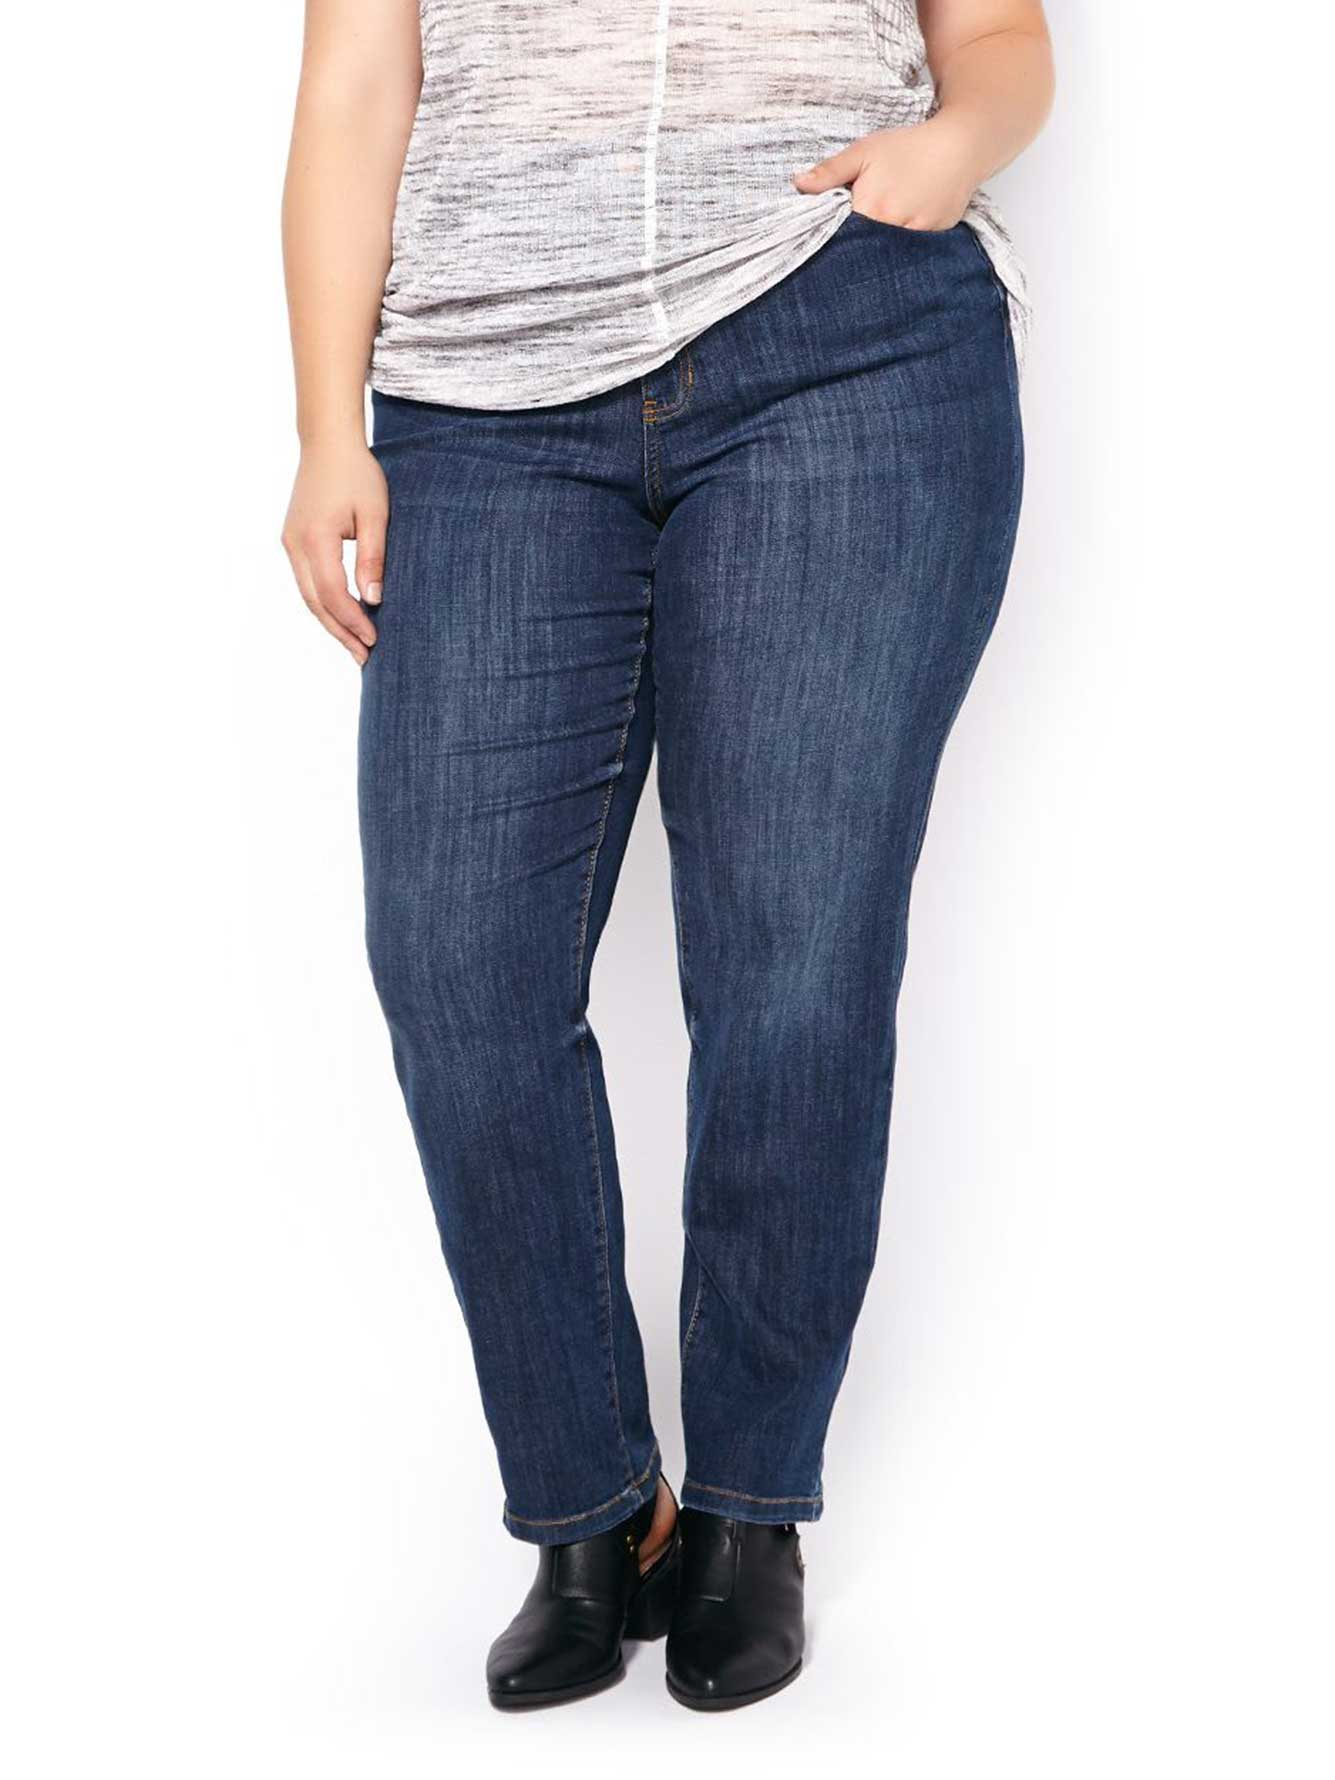 Enjoy women's straight leg jeans in a variety of styles so that you can find the perfect fit. It's undeniable, The best dressed shoppers look to Old Navy for straight leg jeans for women in the latest fits, colors and styling options.